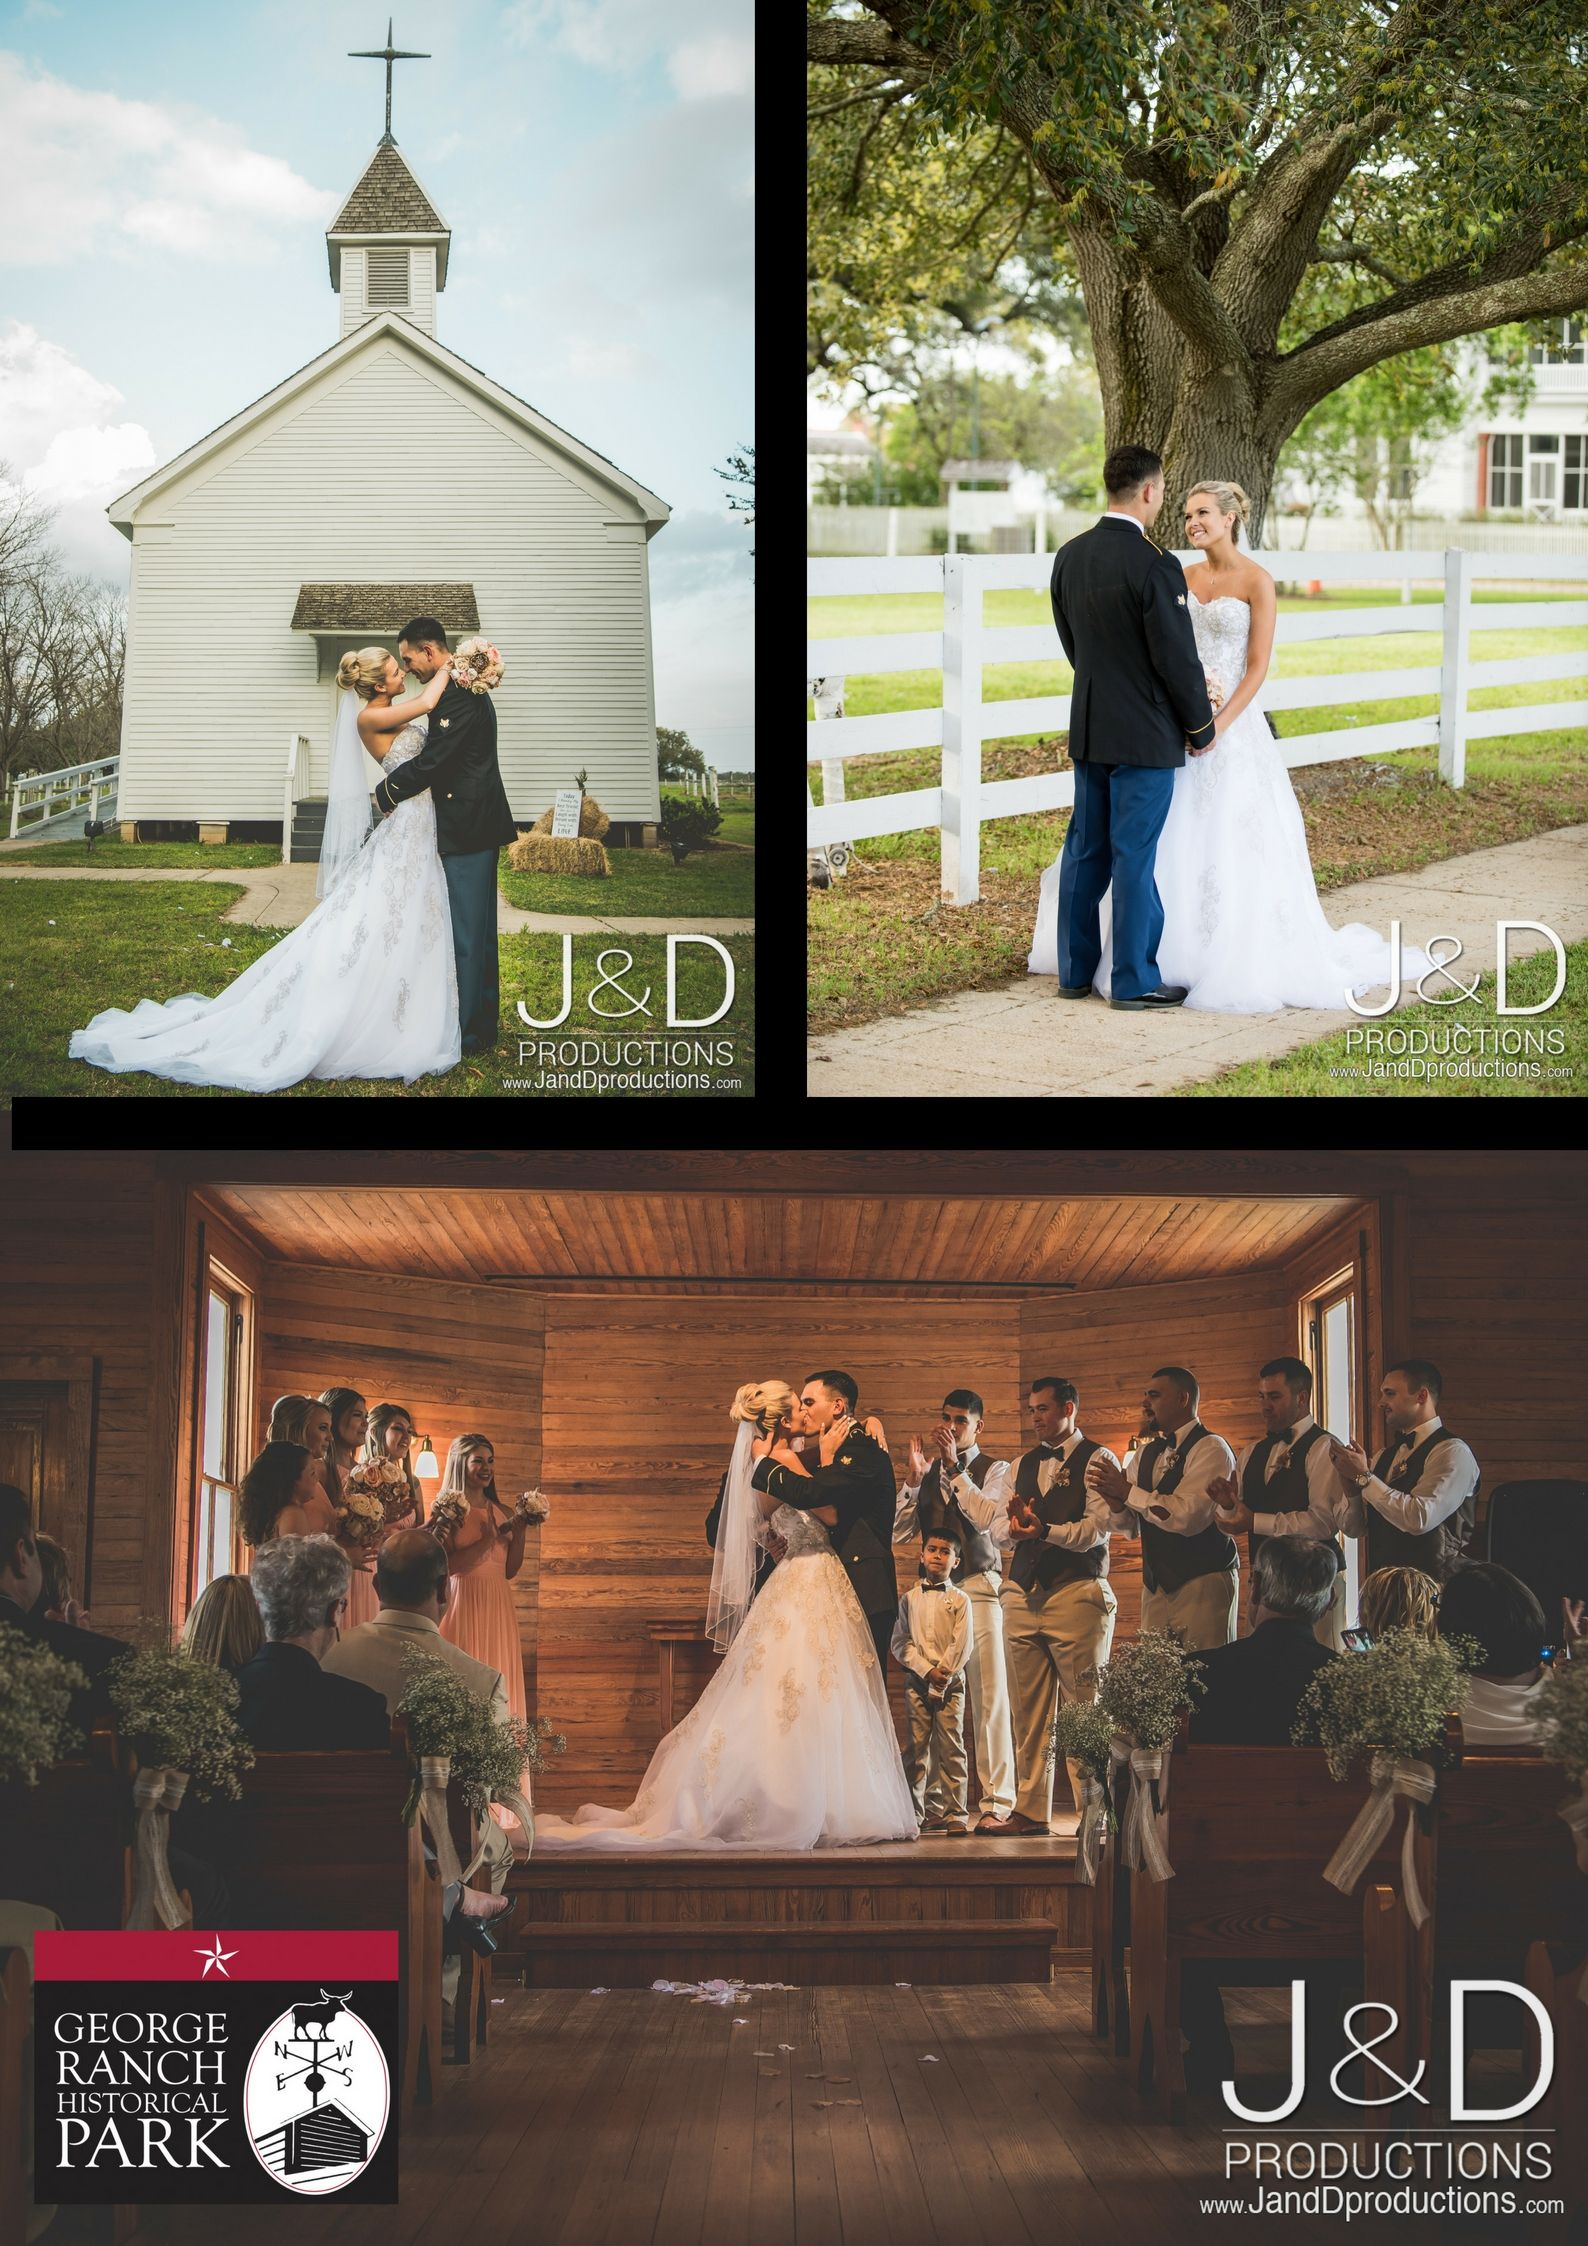 Weddings At George Ranch Historical Park In Richmond Tx